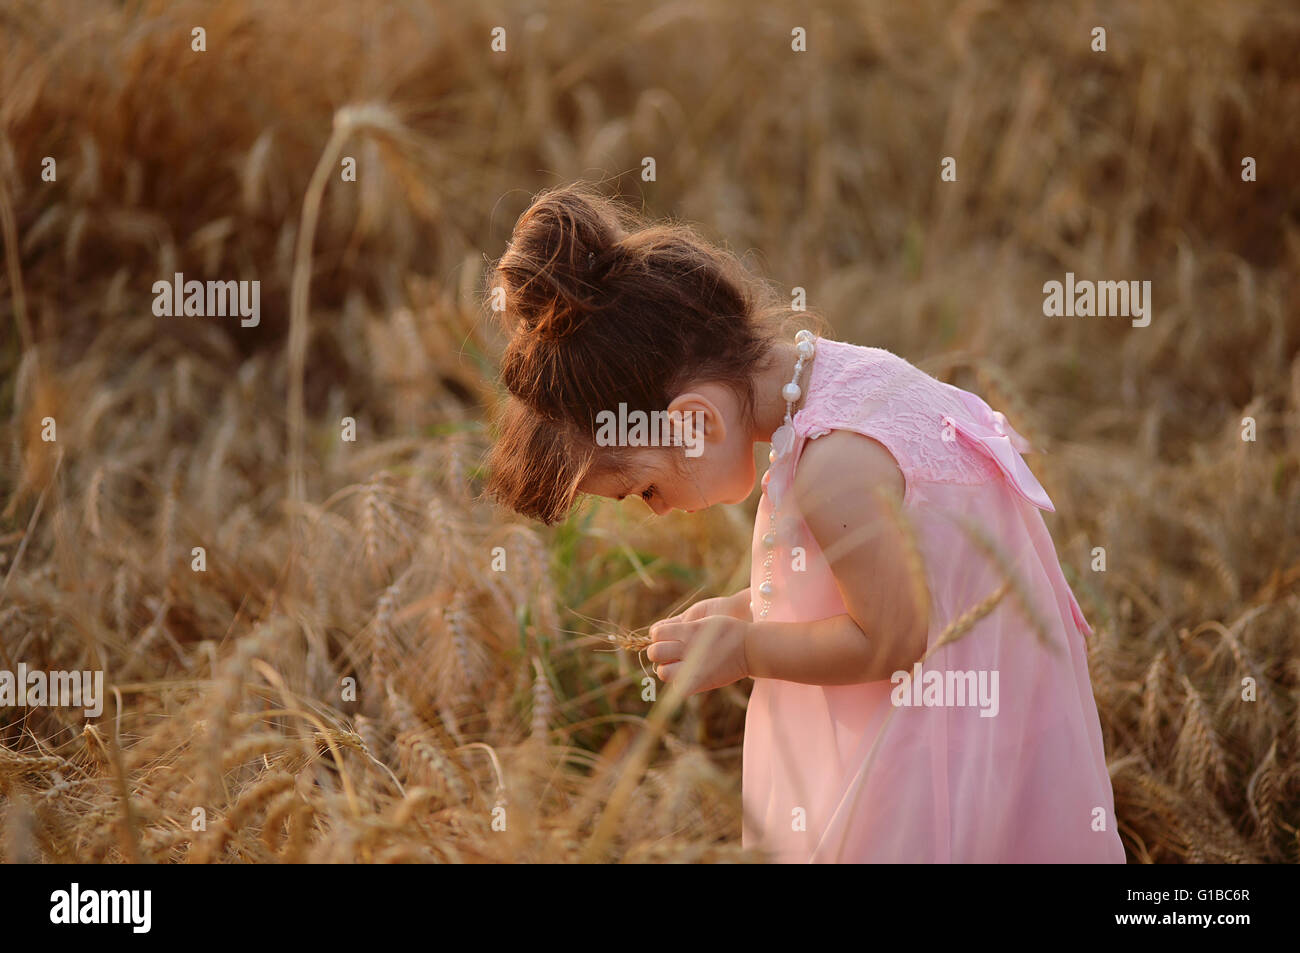 little girl in a pink dress leaned over wheat spikelets. - Stock Image